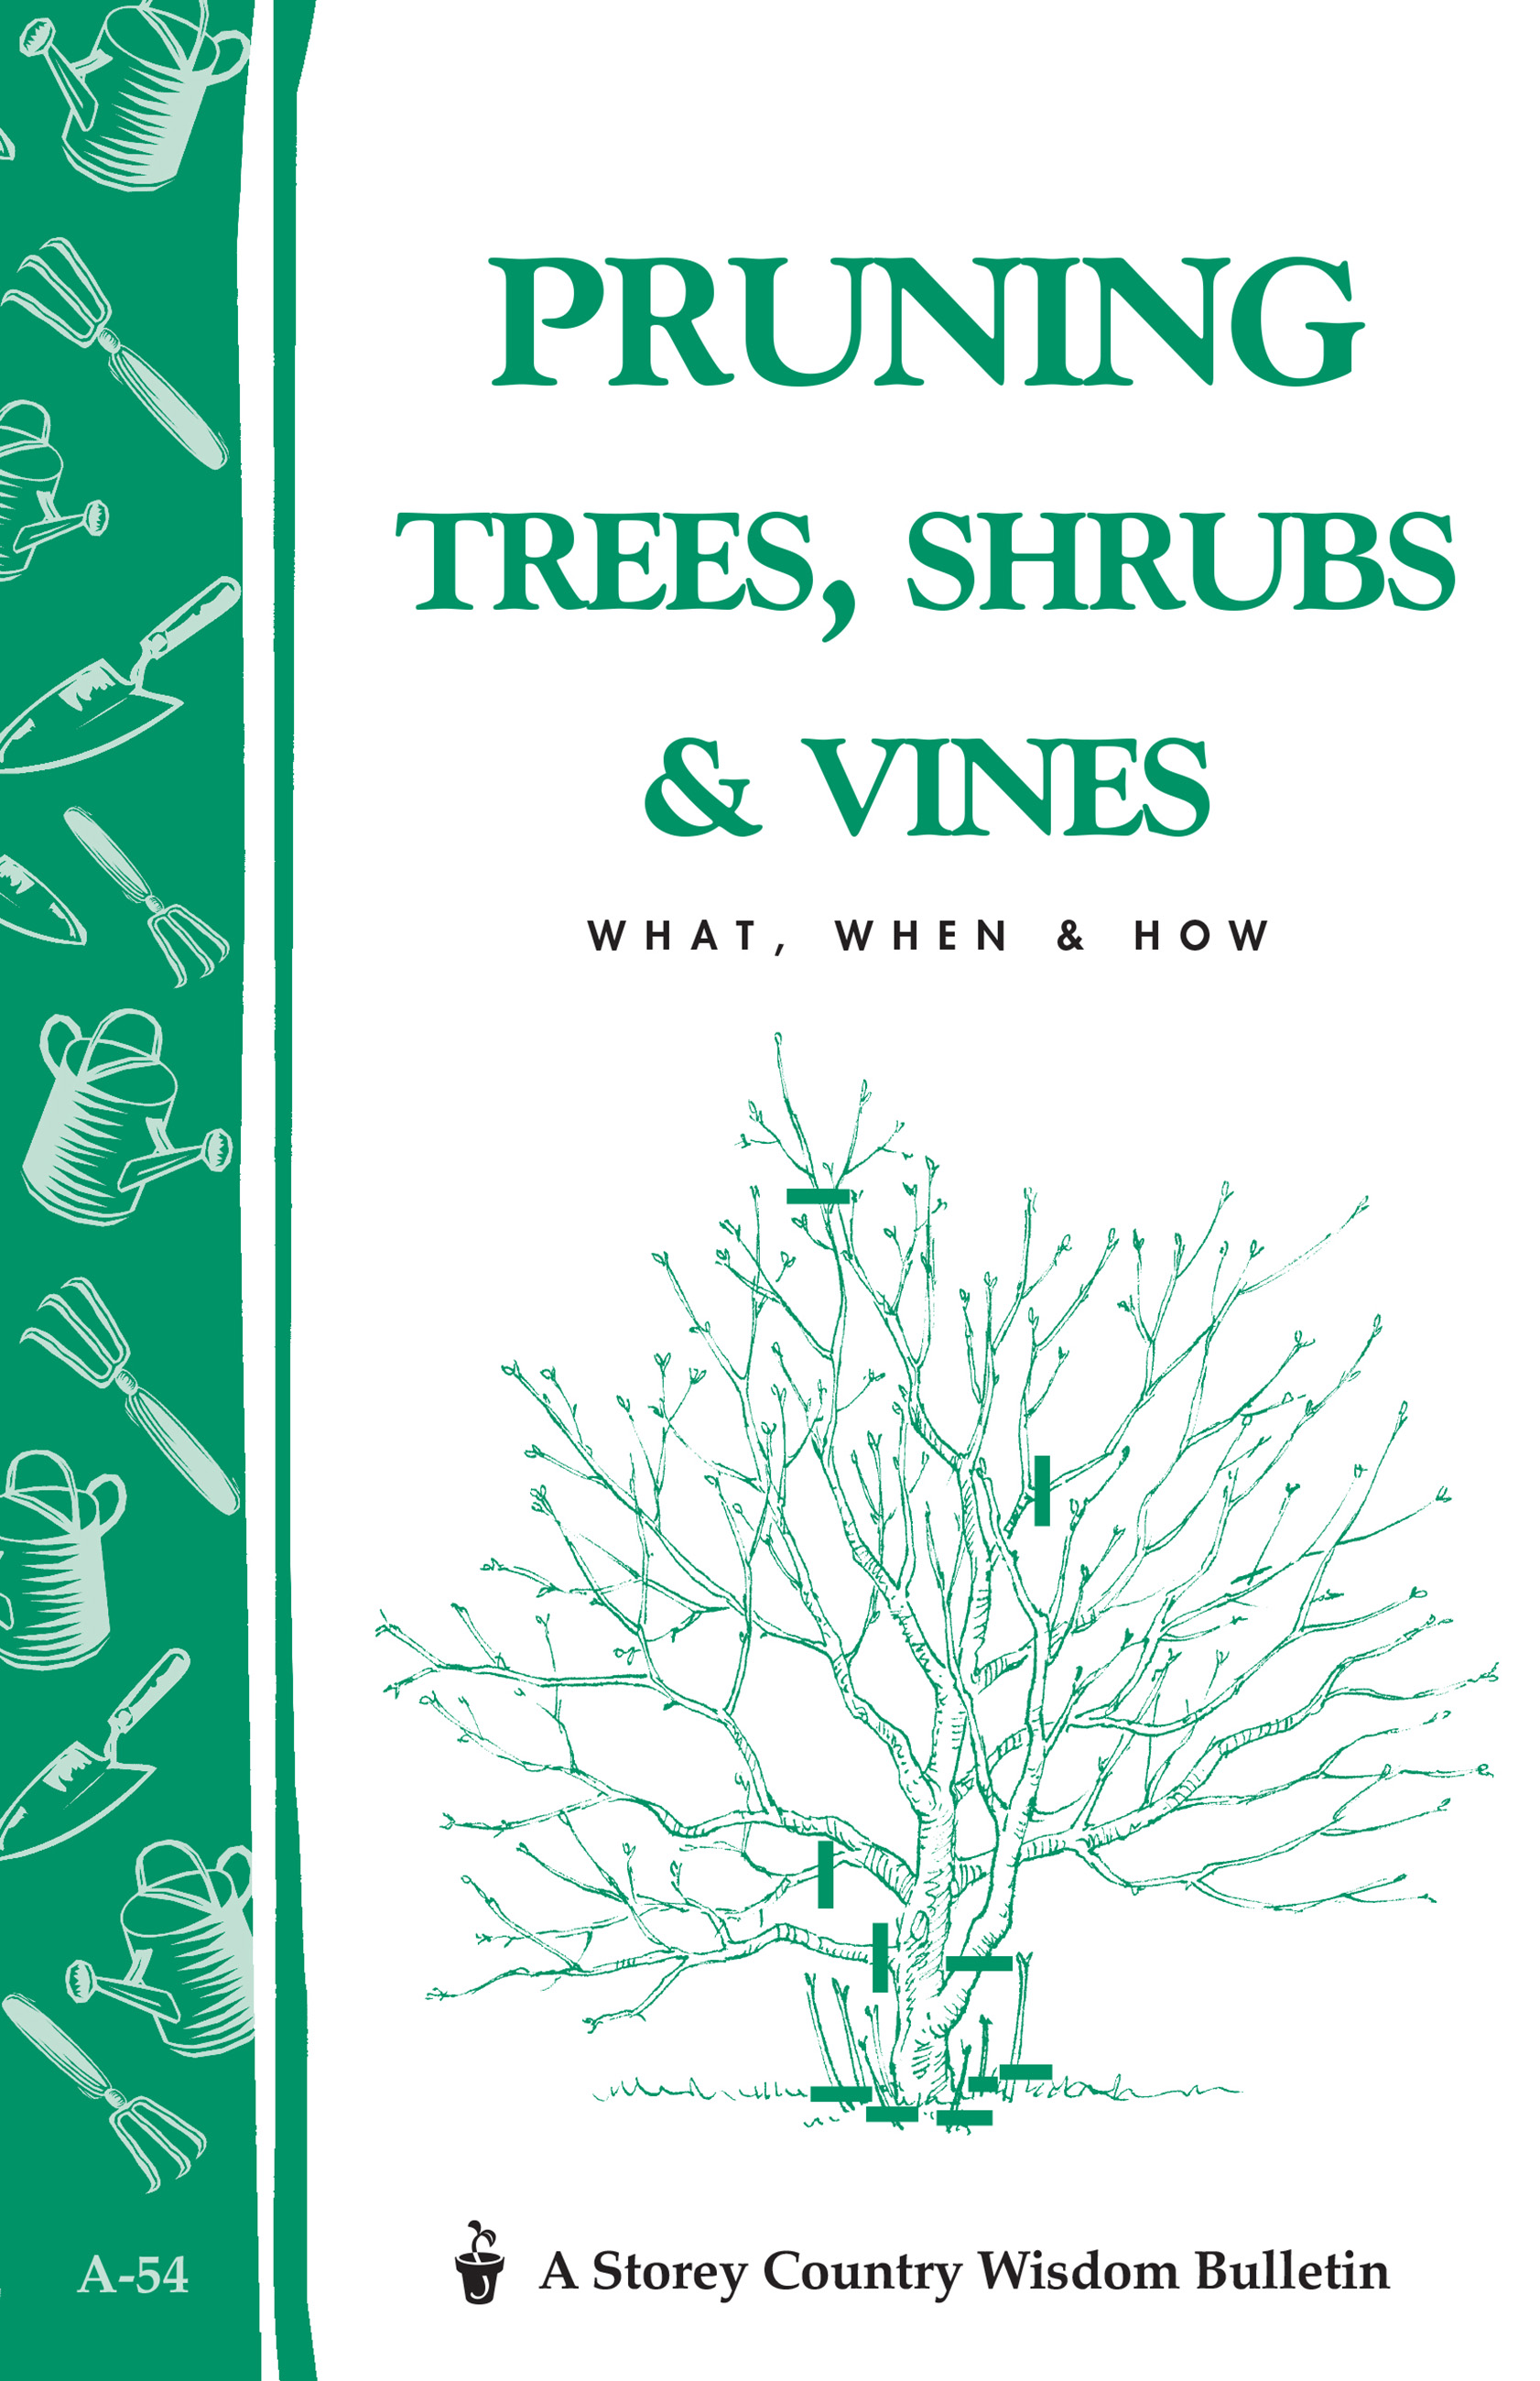 Pruning Trees, Shrubs & Vines Storey's Country Wisdom Bulletin A-54